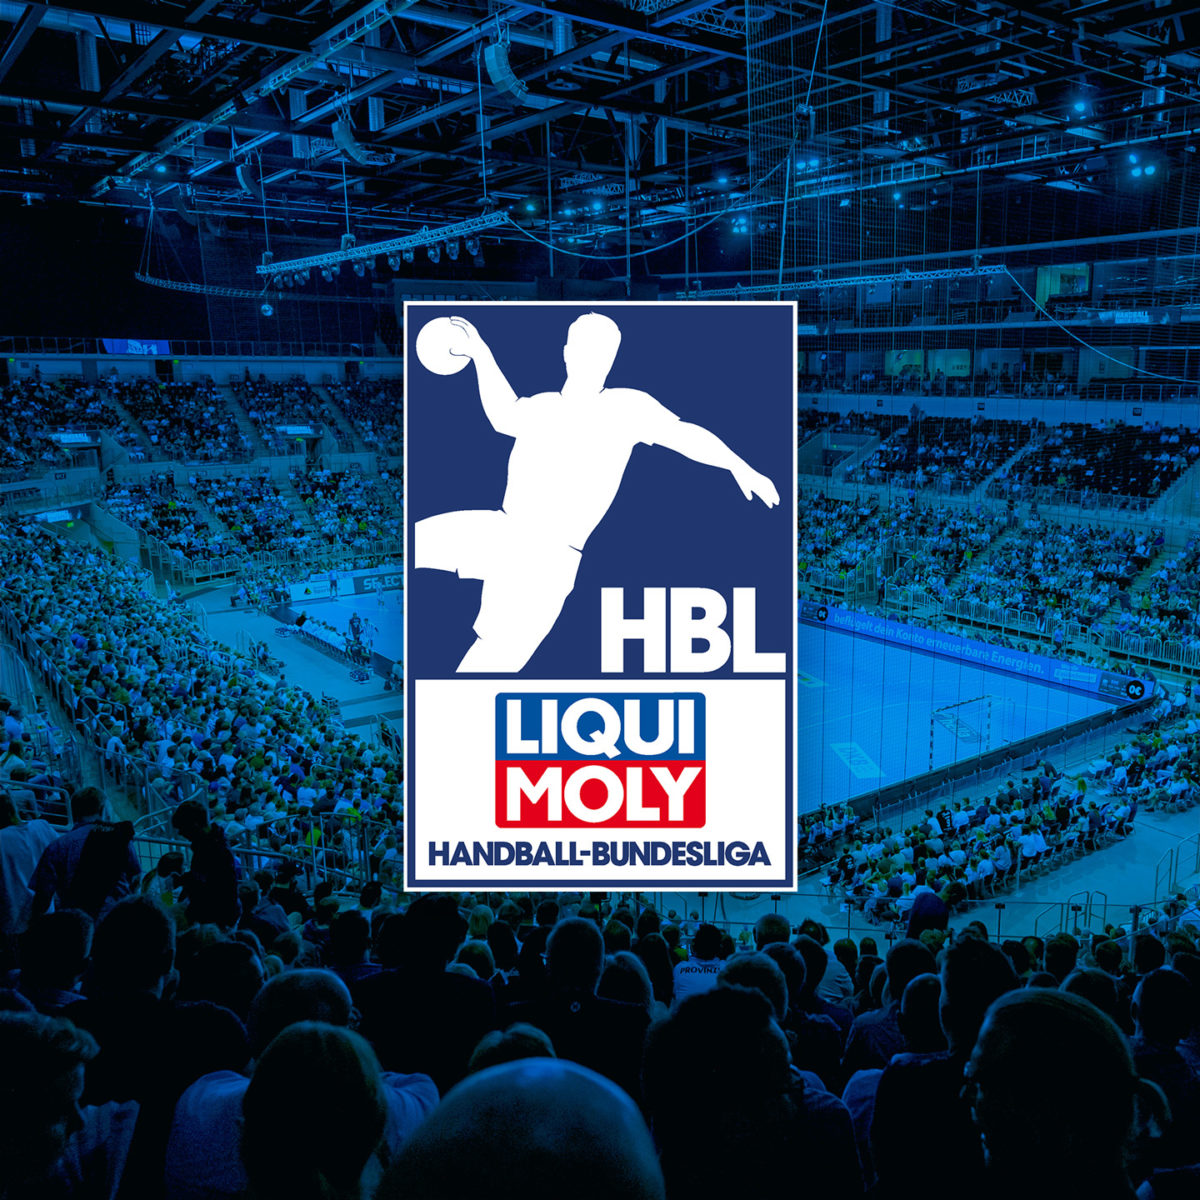 LIQUI MOLY Handball-Bundesliga and KINEXON